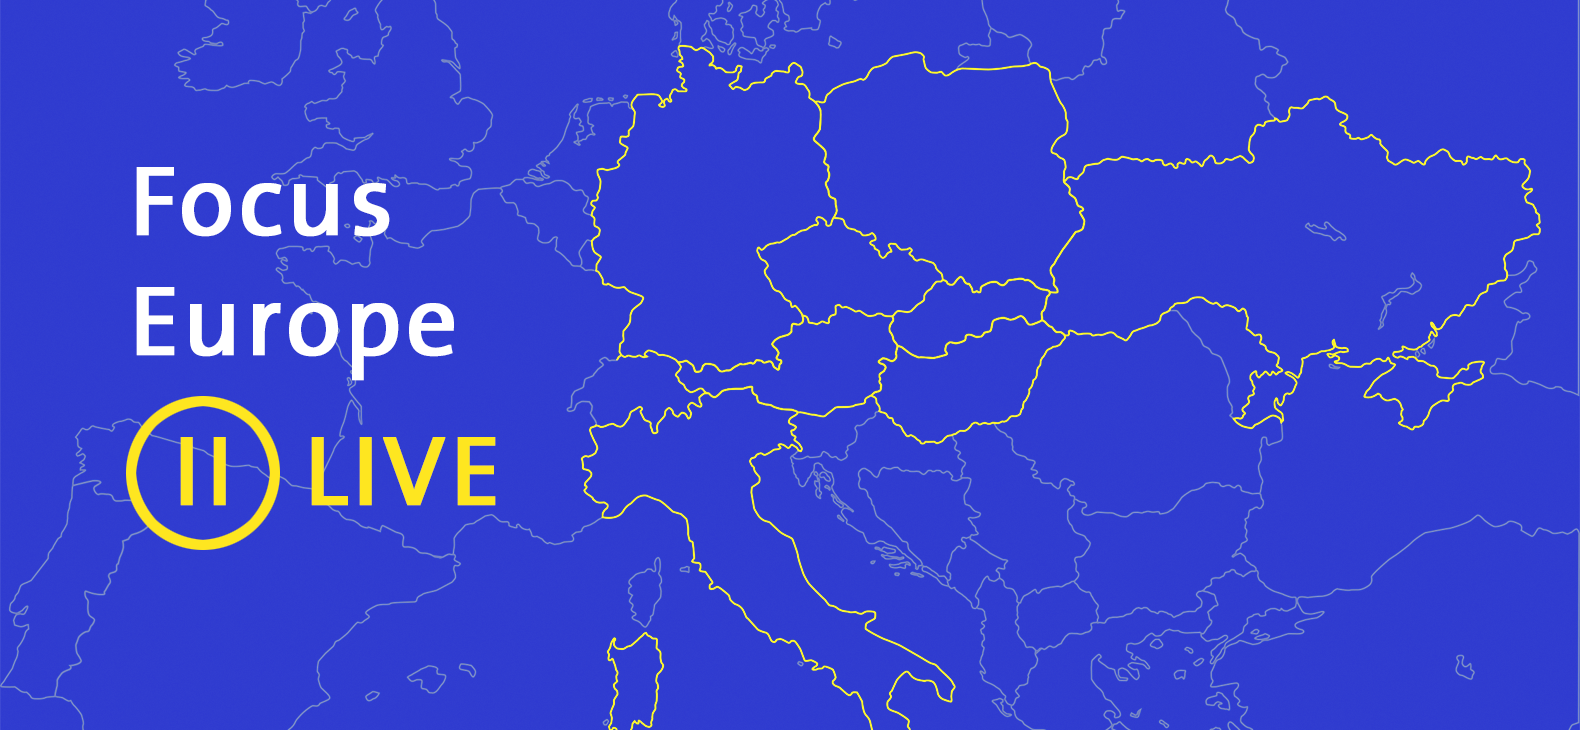 Focus Europe II LIVE - title over a blue map of Europe with hilighted borders of the partner countries